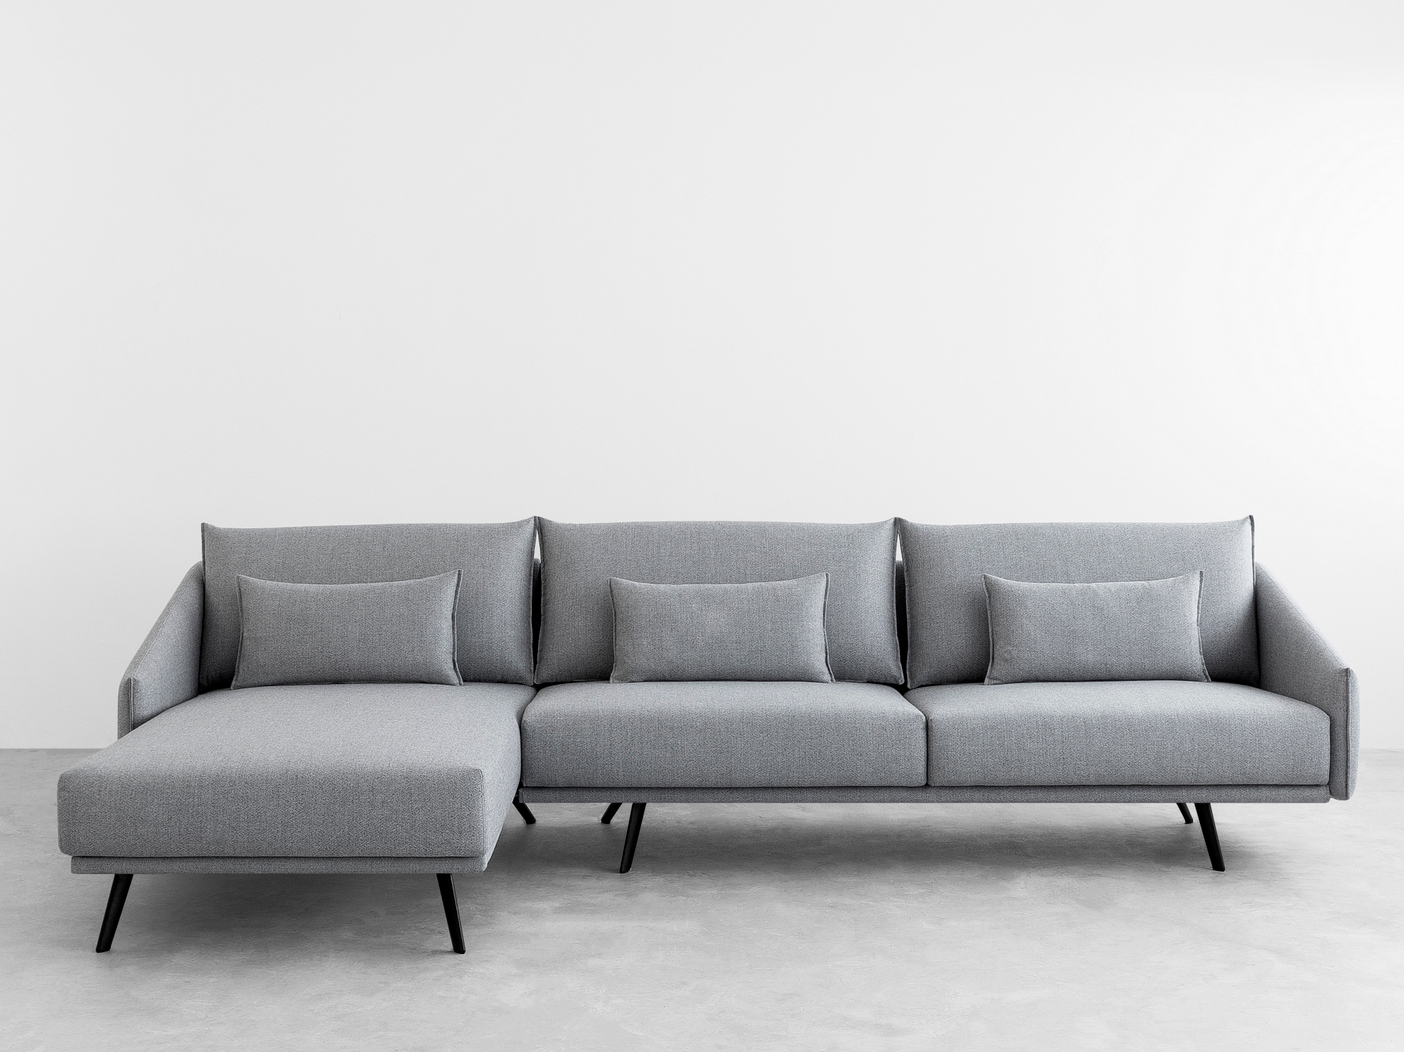 Costura sofa with chaise longue costura collection by stua for Chaise longue style sofa